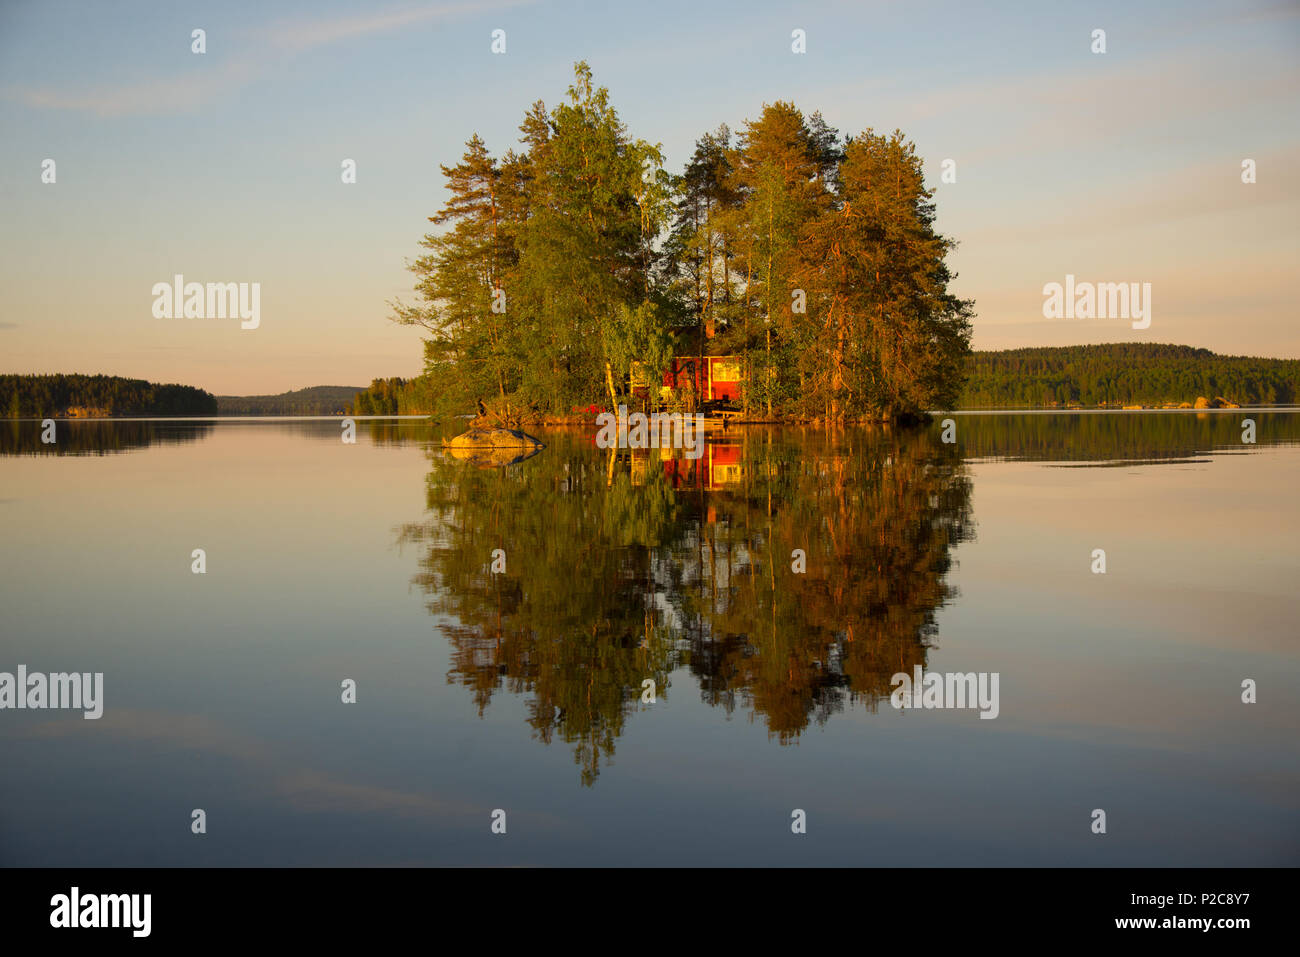 Sunset reflection. Lake Kukkia, Luopioinen, Finland. - Stock Image